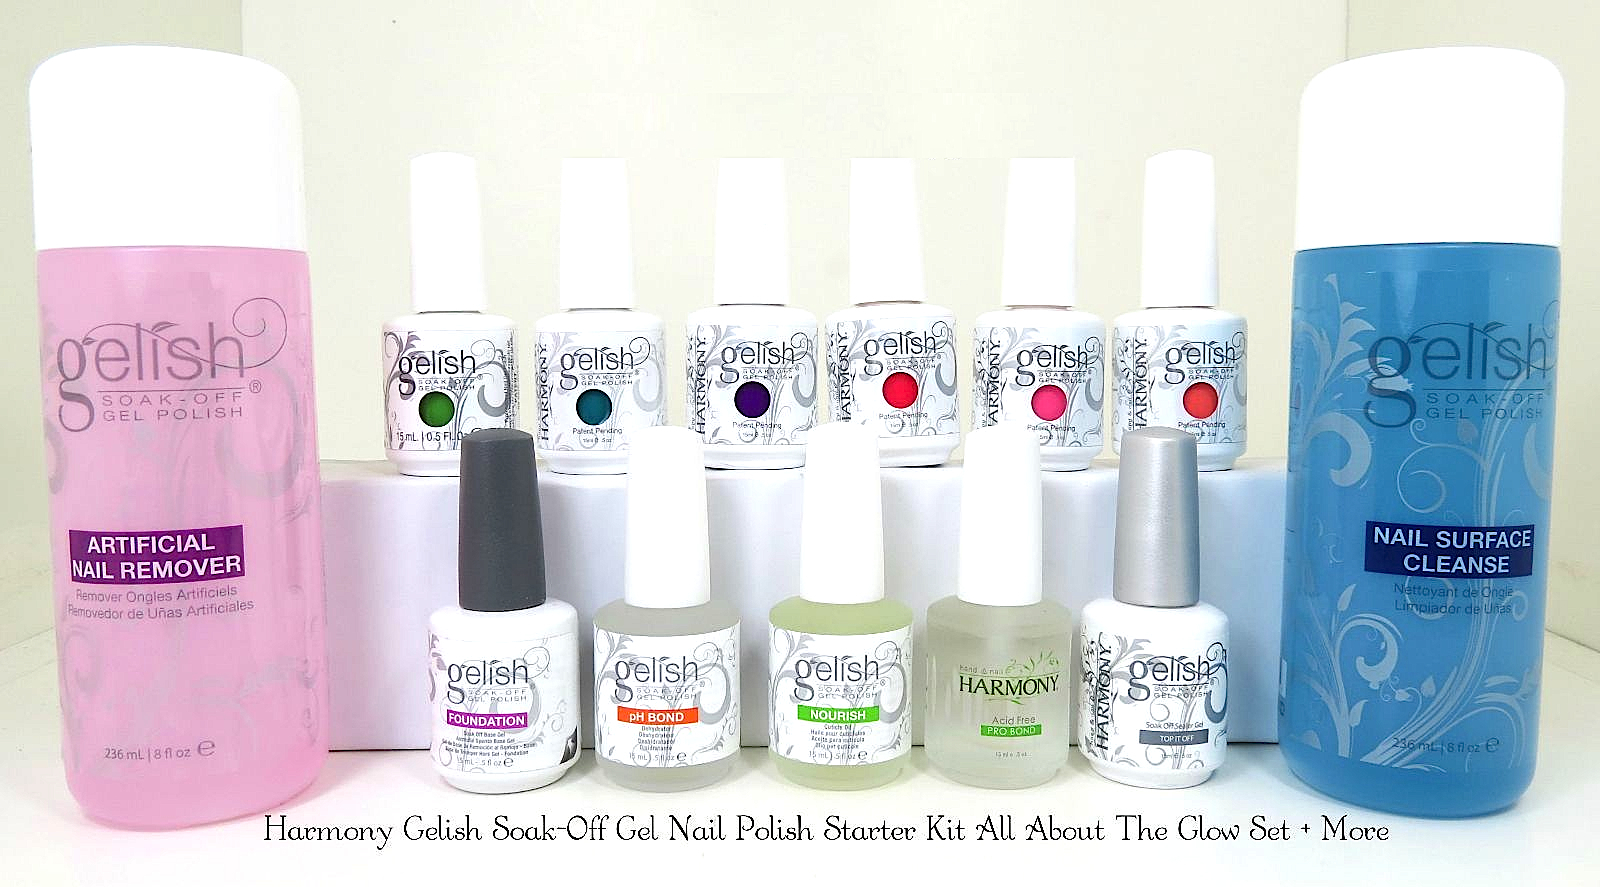 harmony gelish gel nail polish starter kit all about the. Black Bedroom Furniture Sets. Home Design Ideas